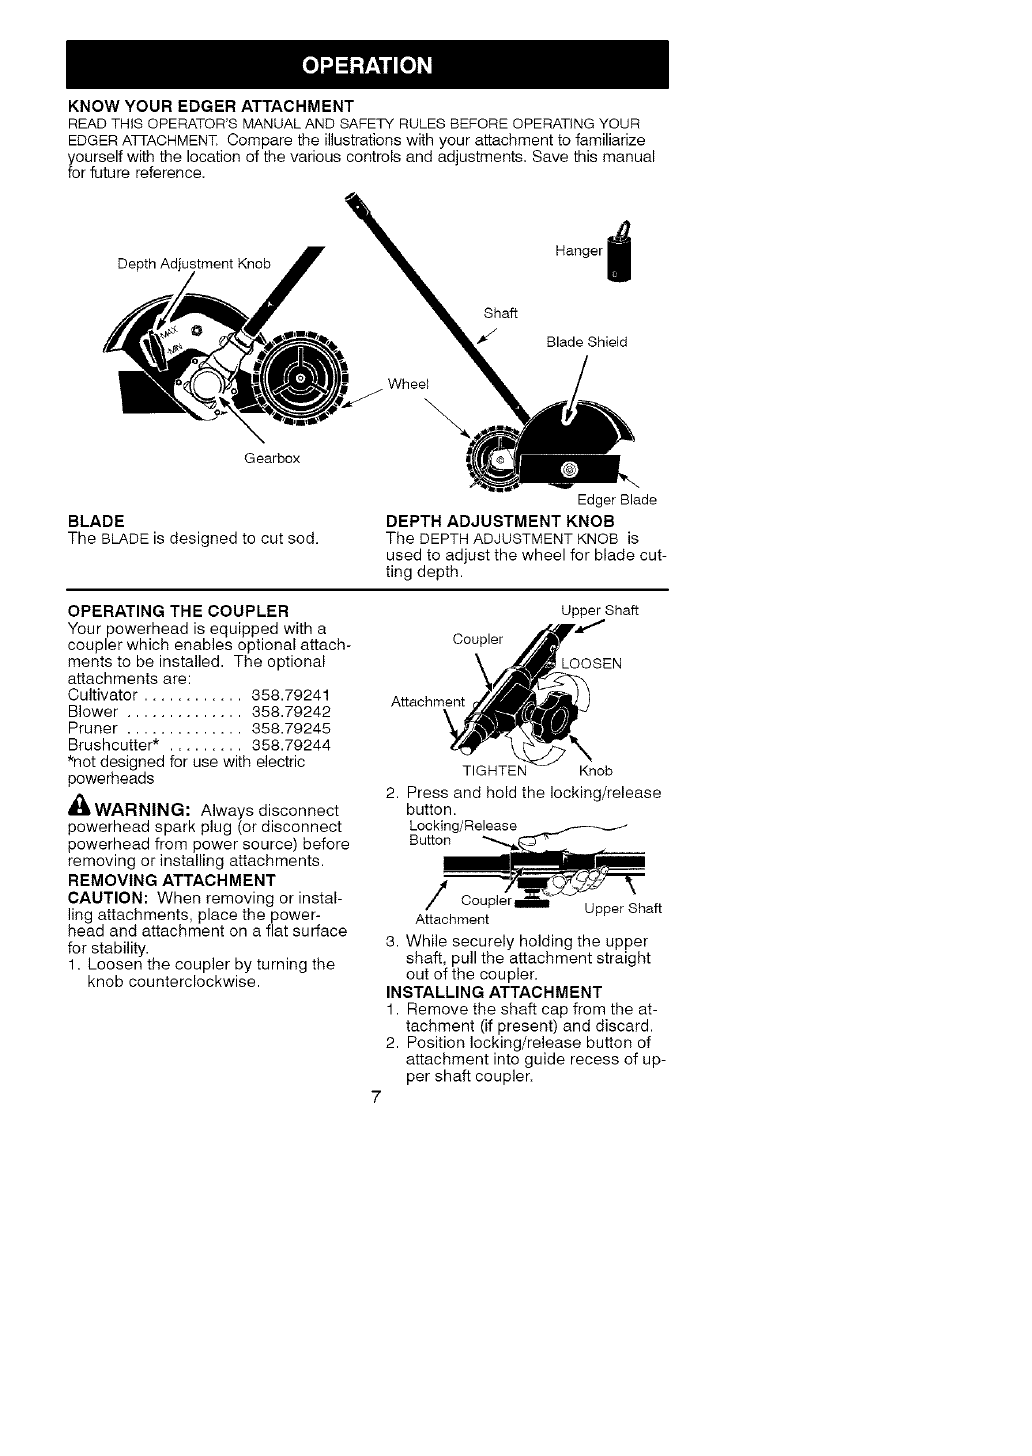 Page 7 of Craftsman Lawn Mower Accessory 358.792403 User